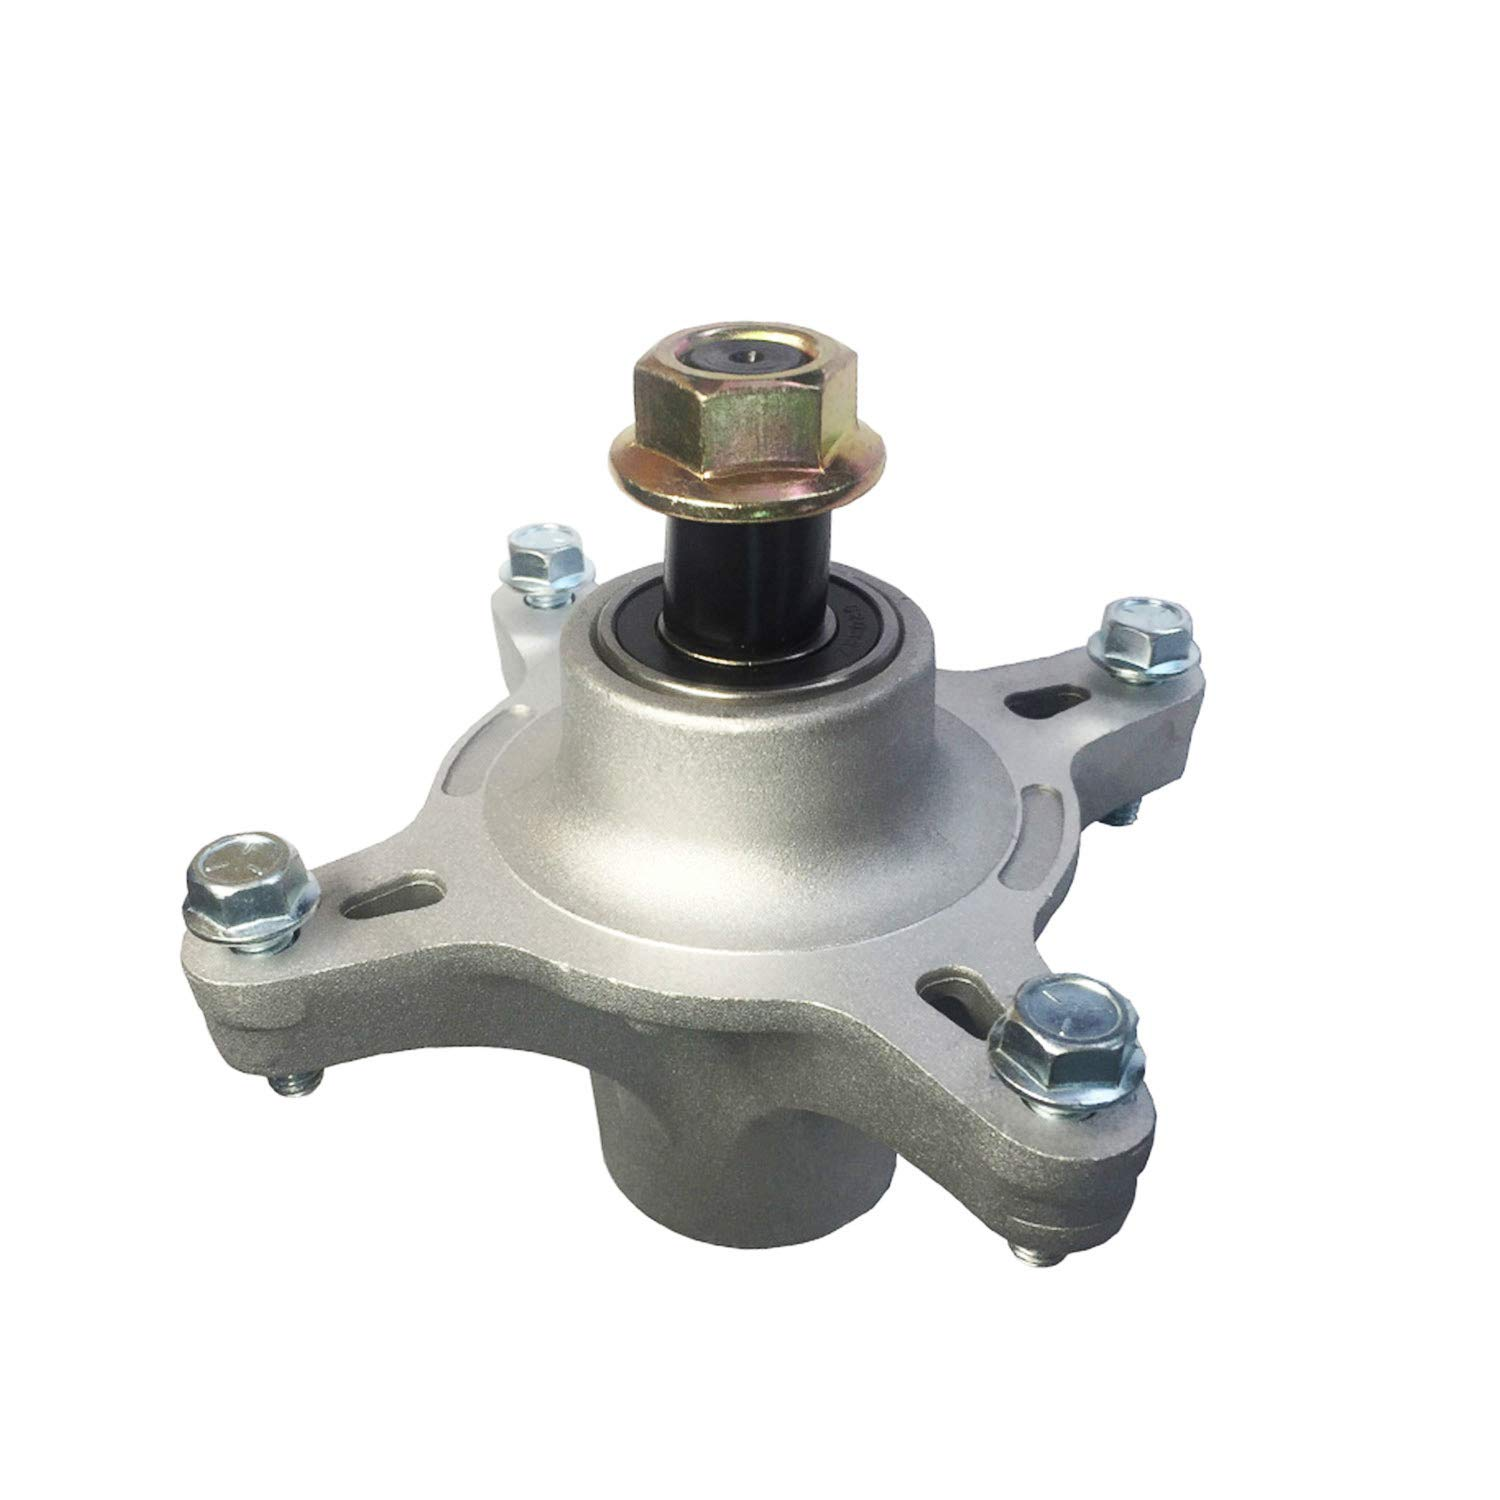 3PK Spindle Assembly Fits Toro Timecutter Replaces 117-7267